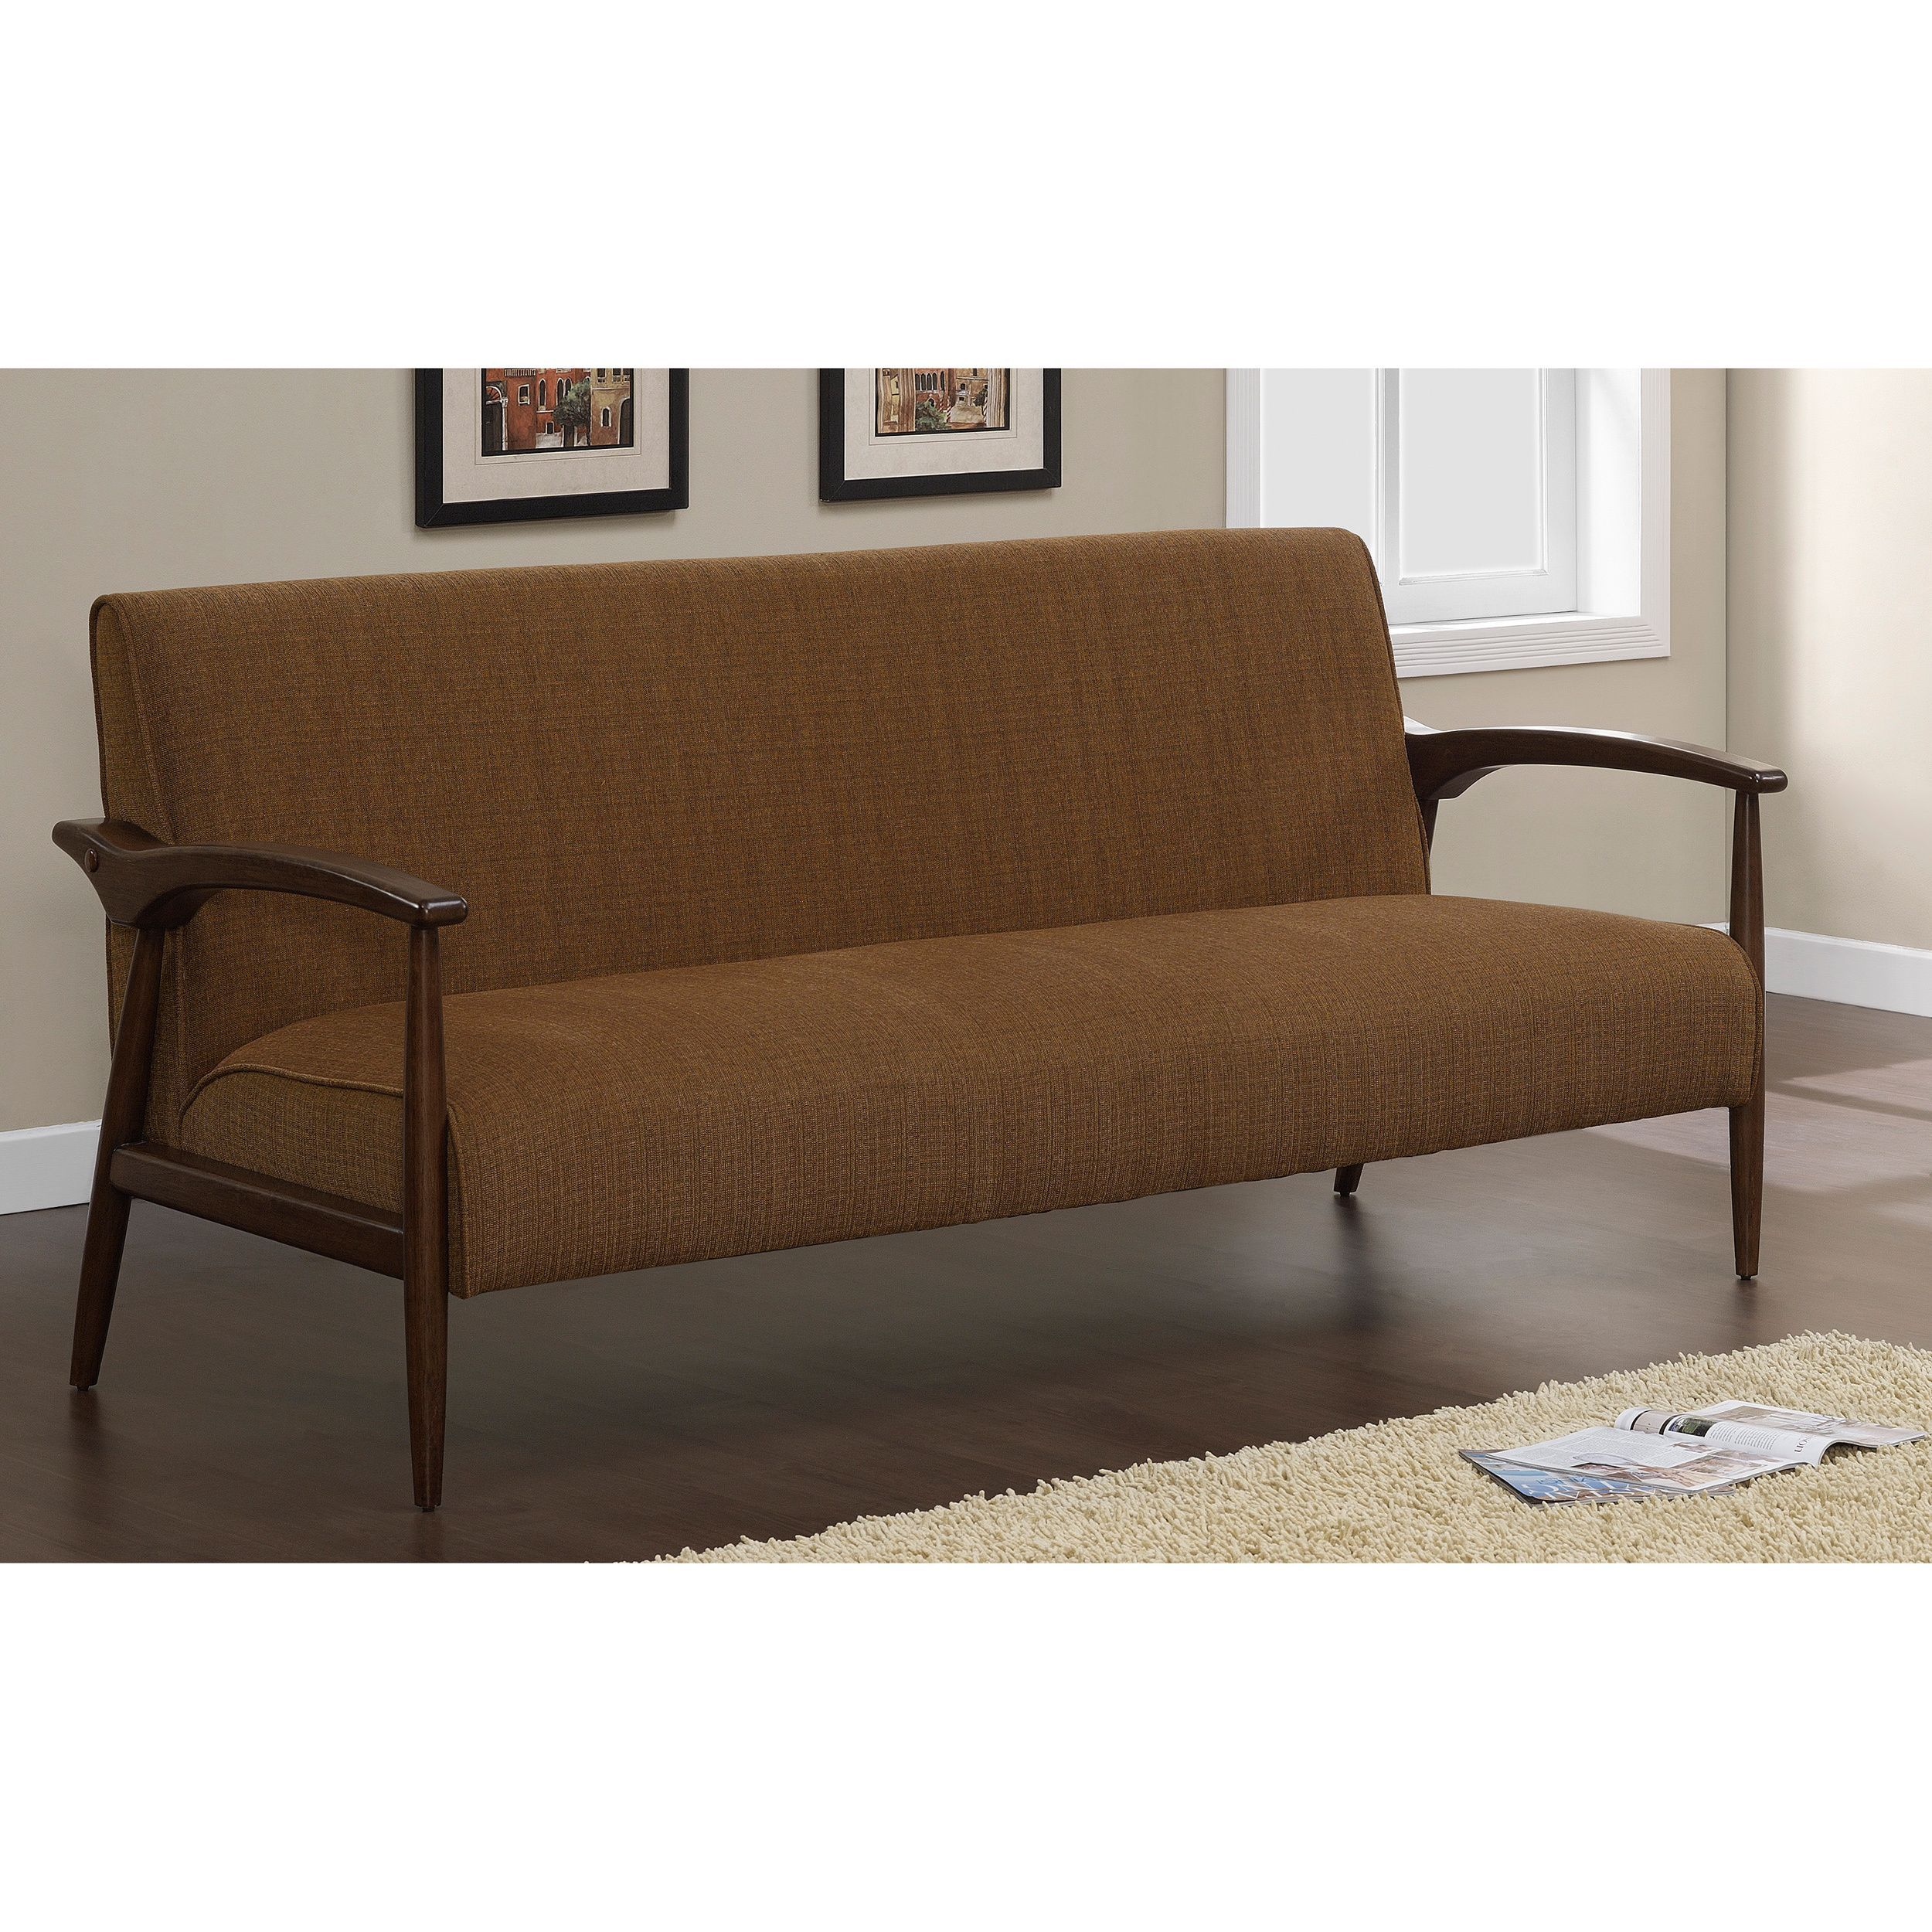 Retro Sofa Wood Add Fresh Appeal To Your Living Room Decor With The Gracie Retro